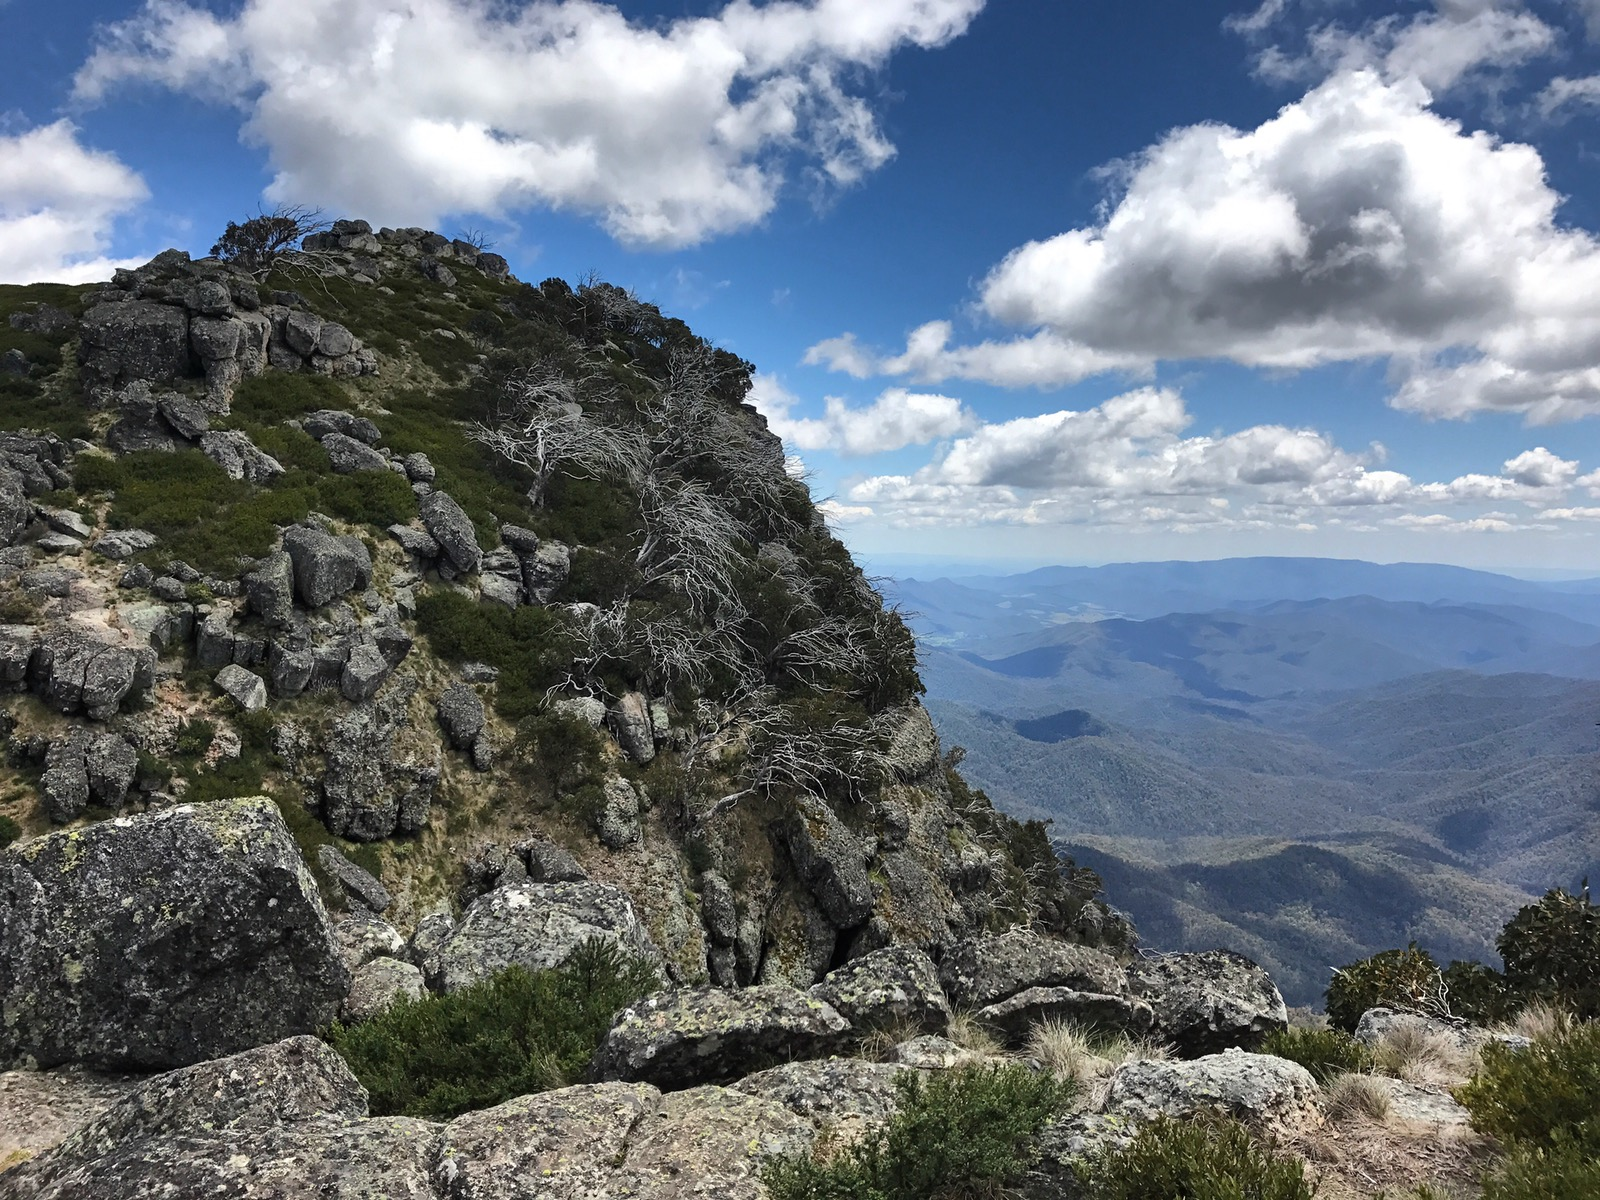 The rocky summit of Mt Cobbler yields amazing panoramic views of the High Country